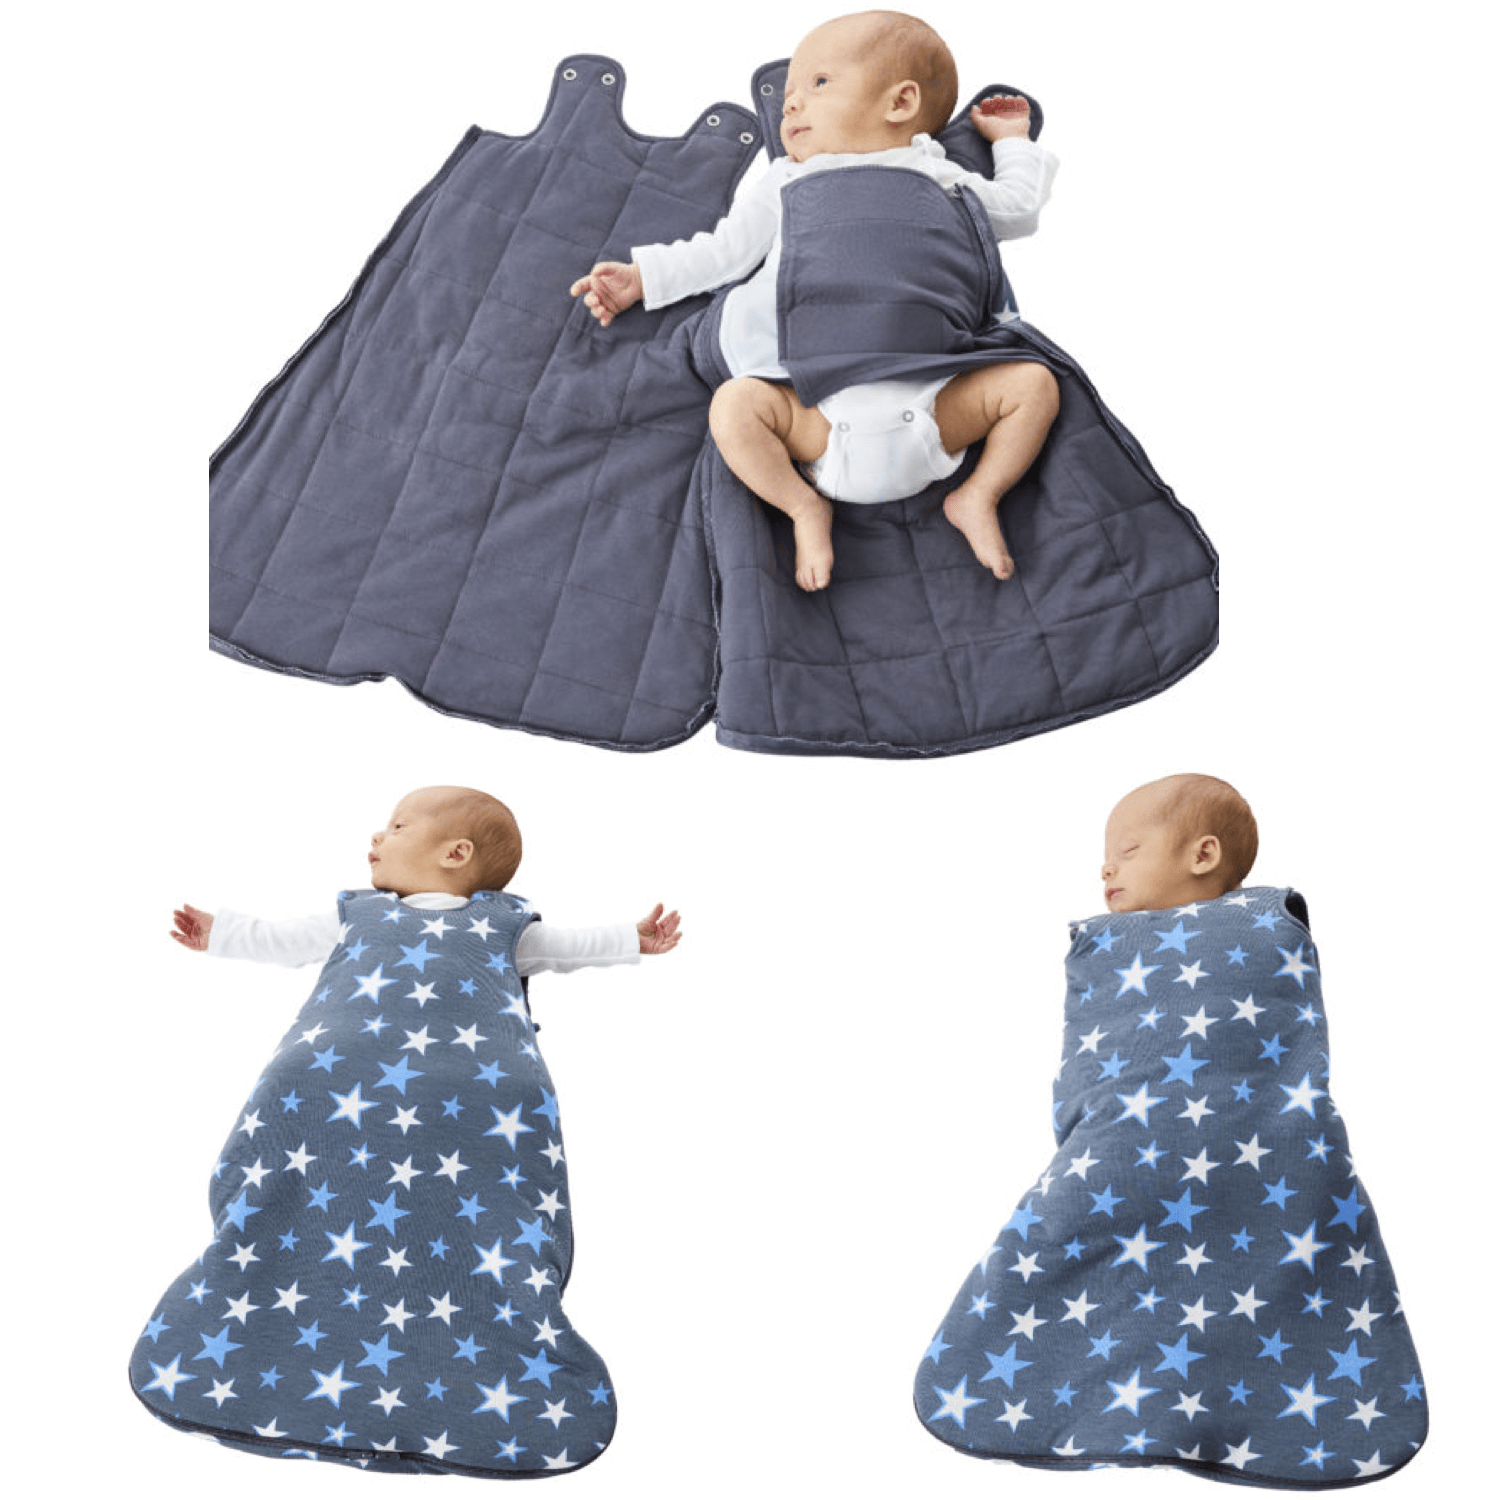 Gunnapod swaddle sack review